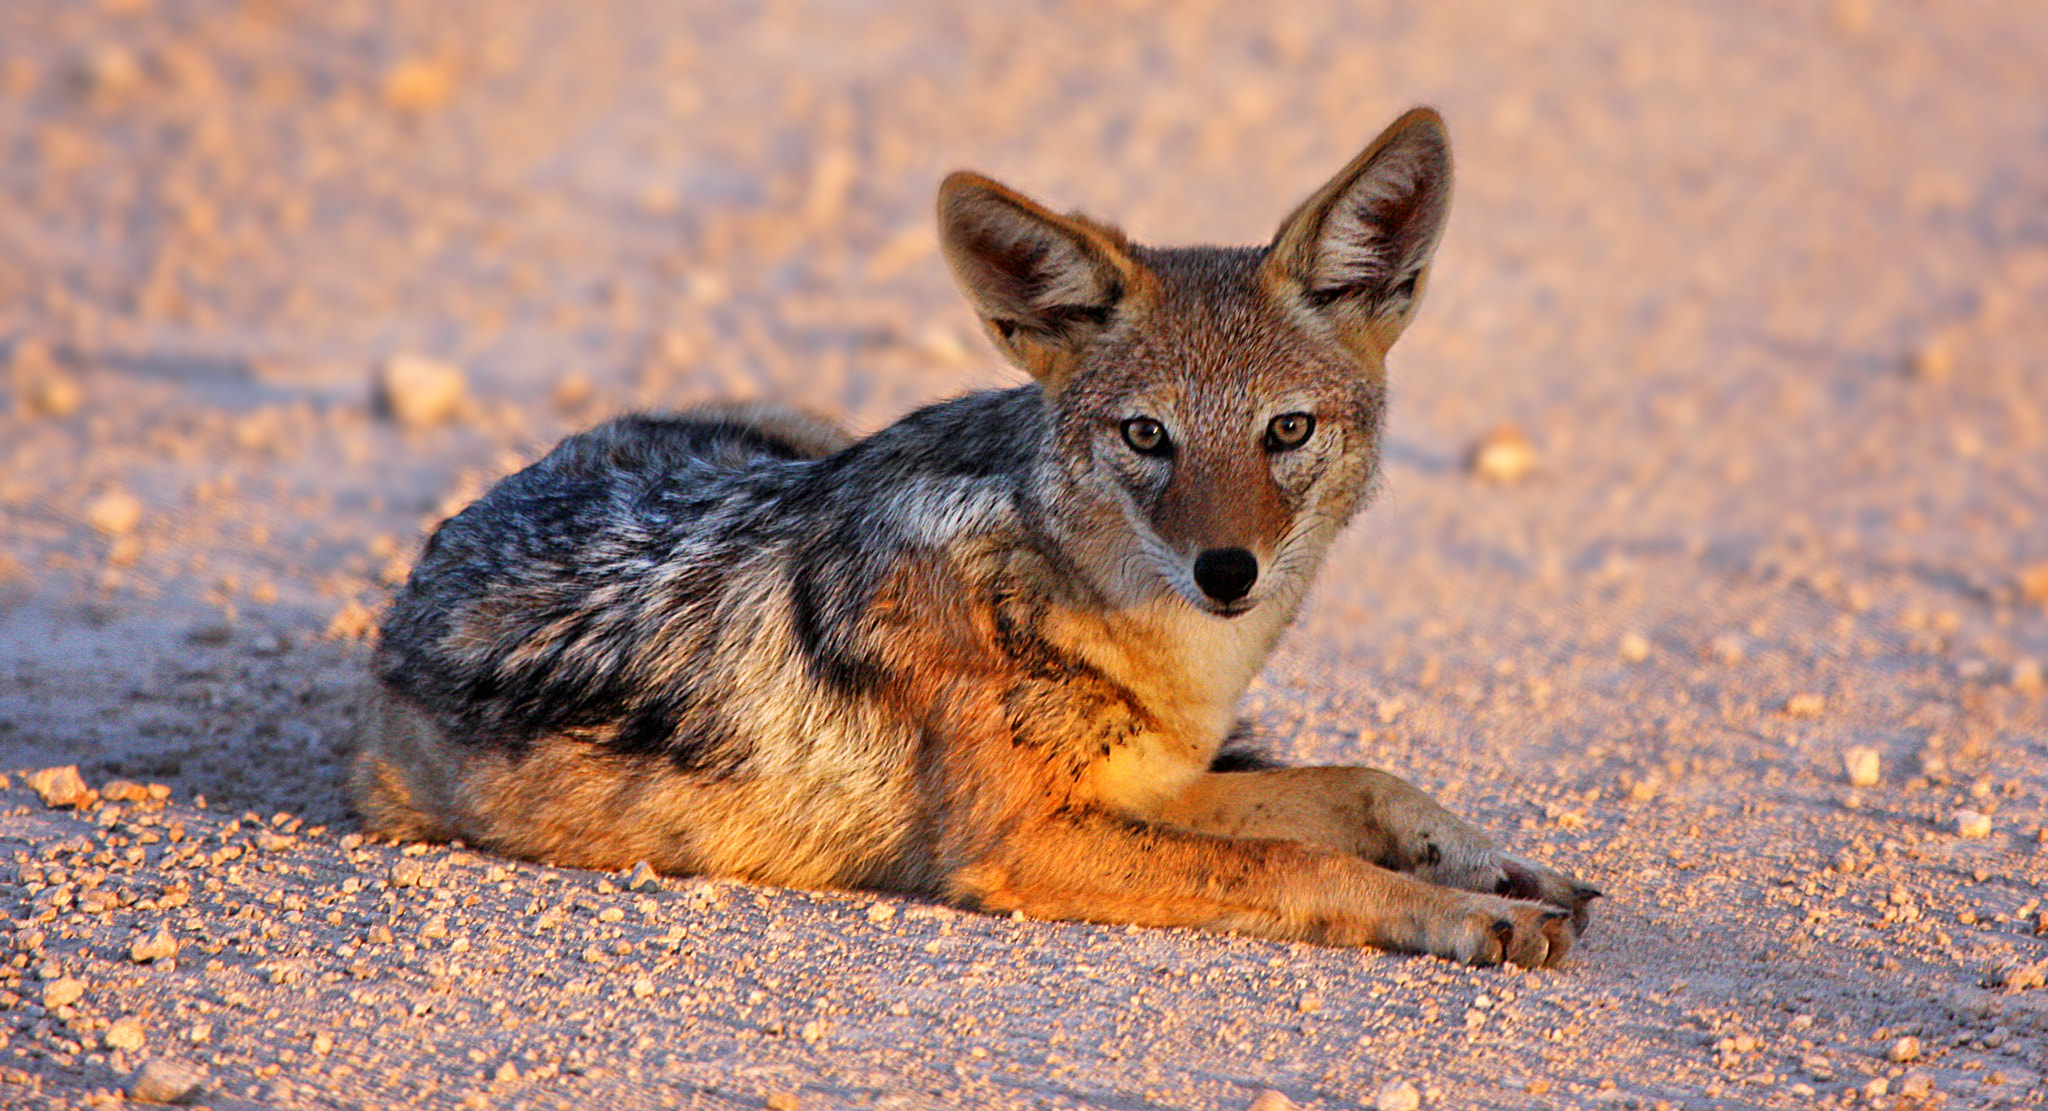 Photograph The dawn of the Jackal by Mattia Generali on 500px